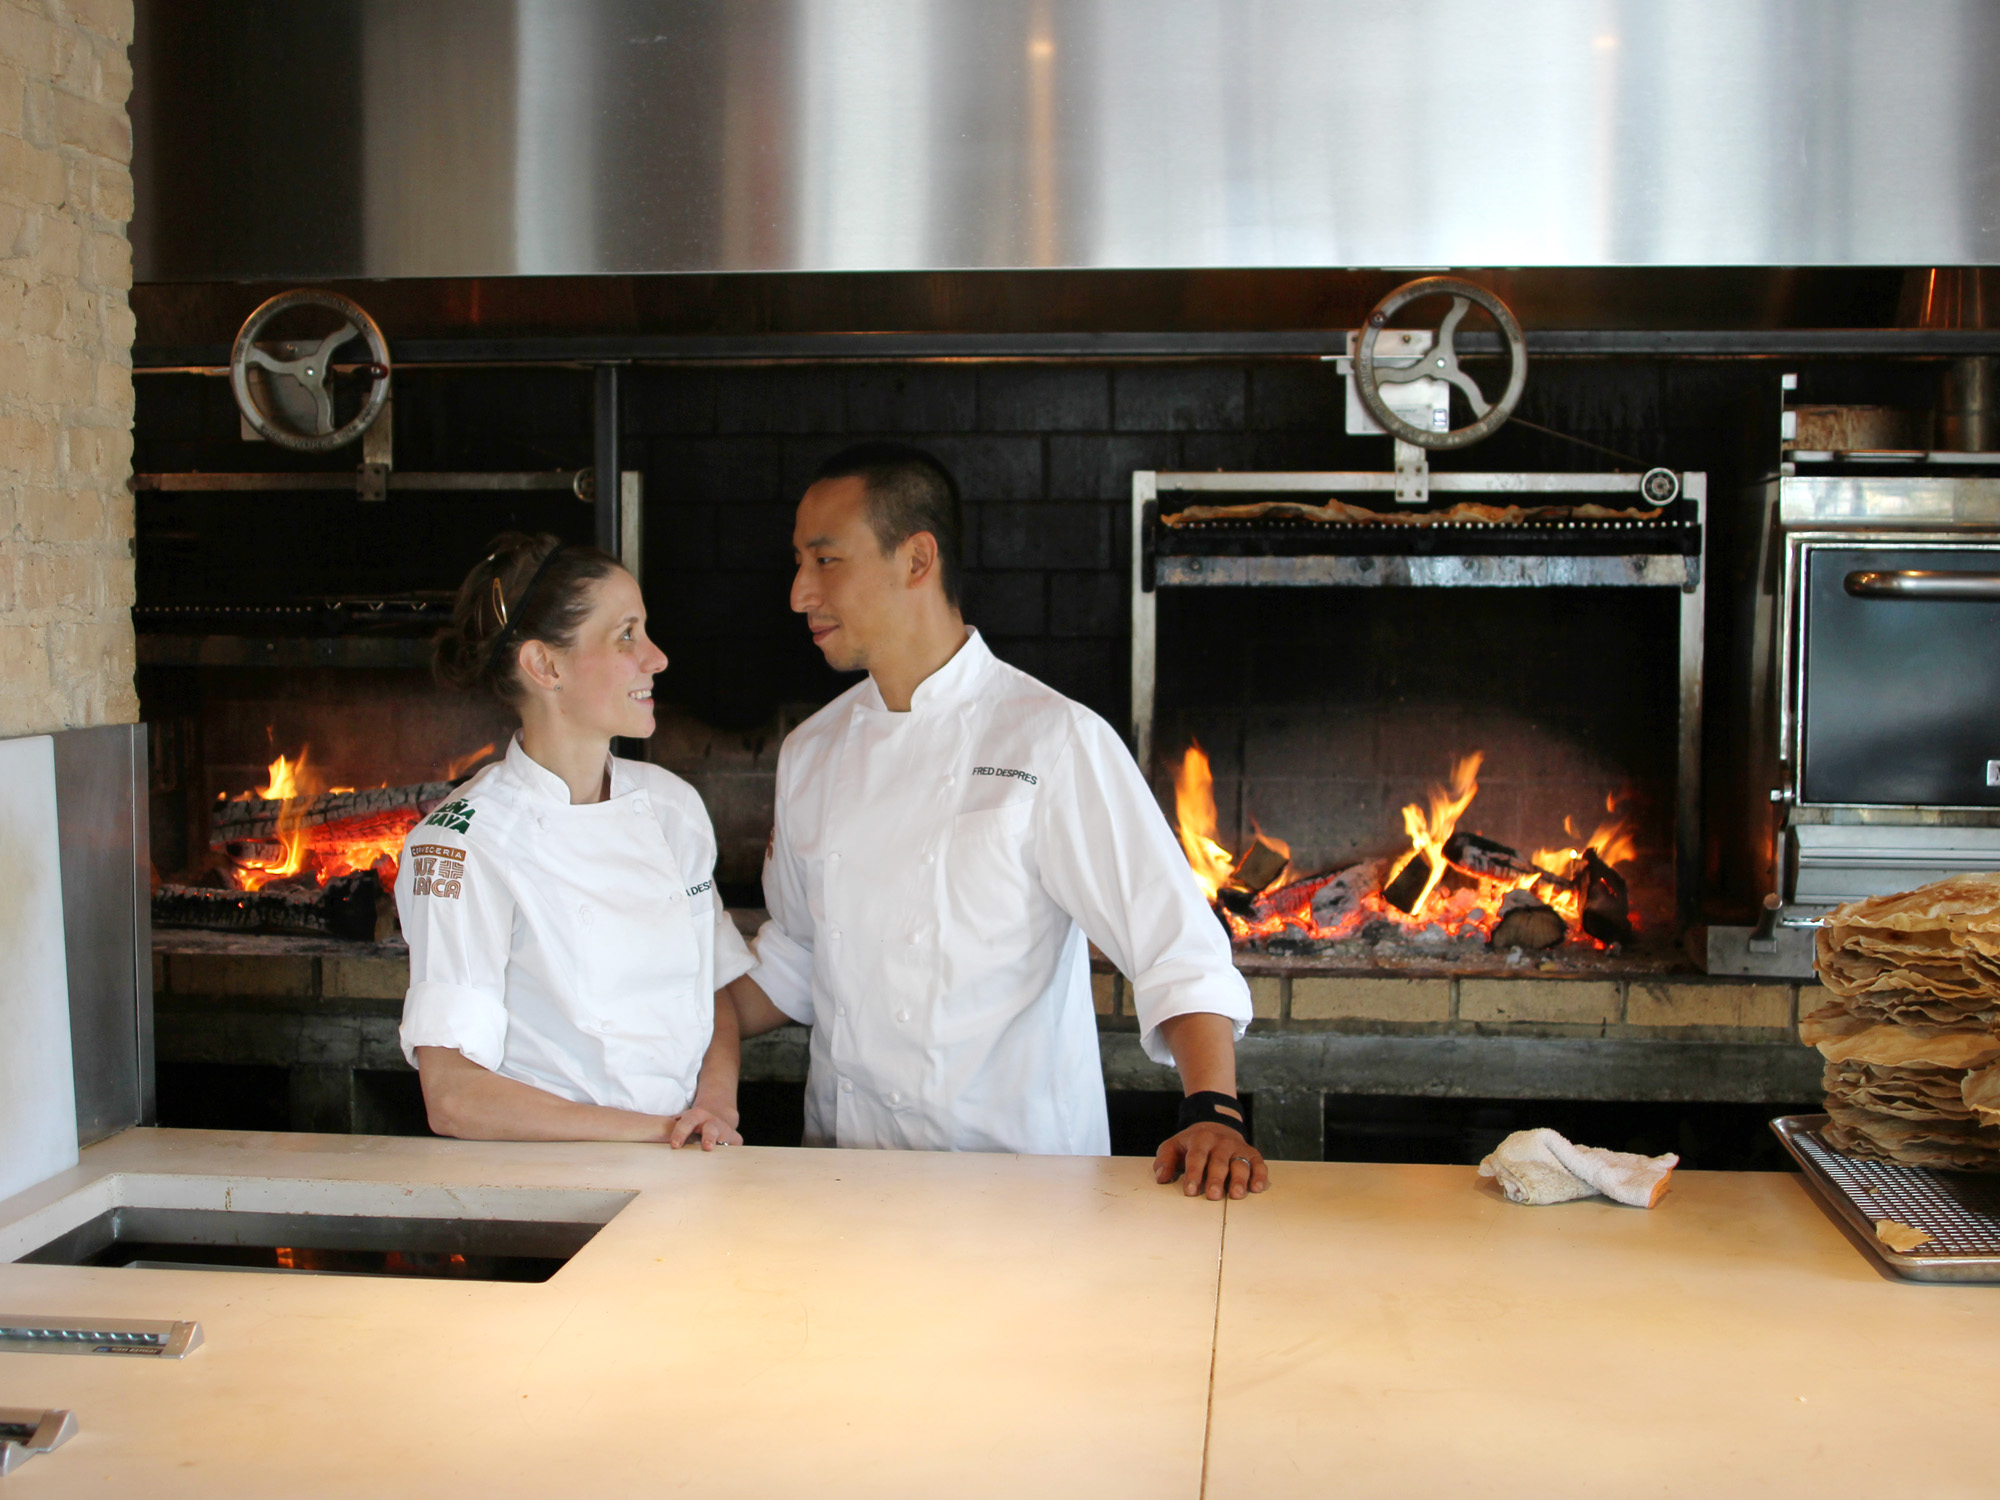 MEET THE COUPLE WHO RUN RICK BAYLESS'S NEW LEÑA BRAVA